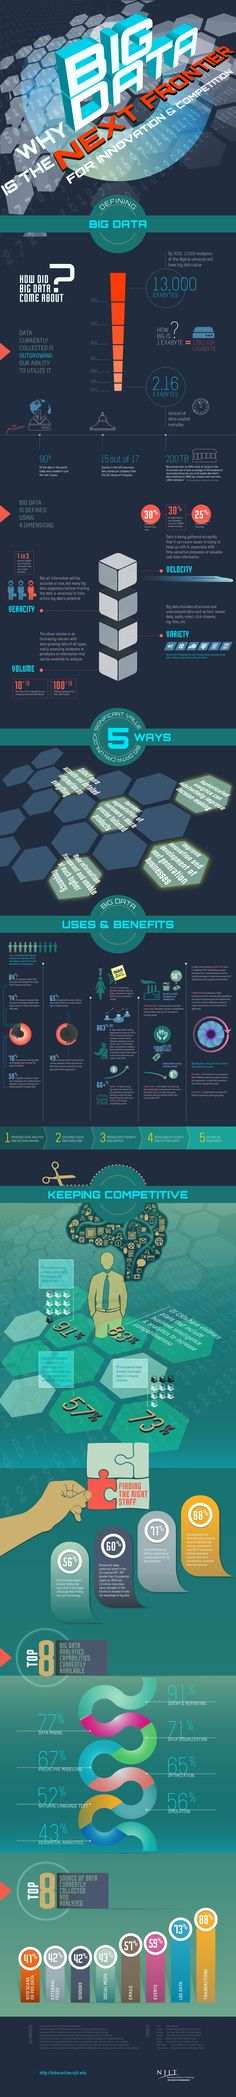 Interesting Infographics on Big Data, by NJ Institute of Technology - Data Science Central... | Big Data Network - Big Data News